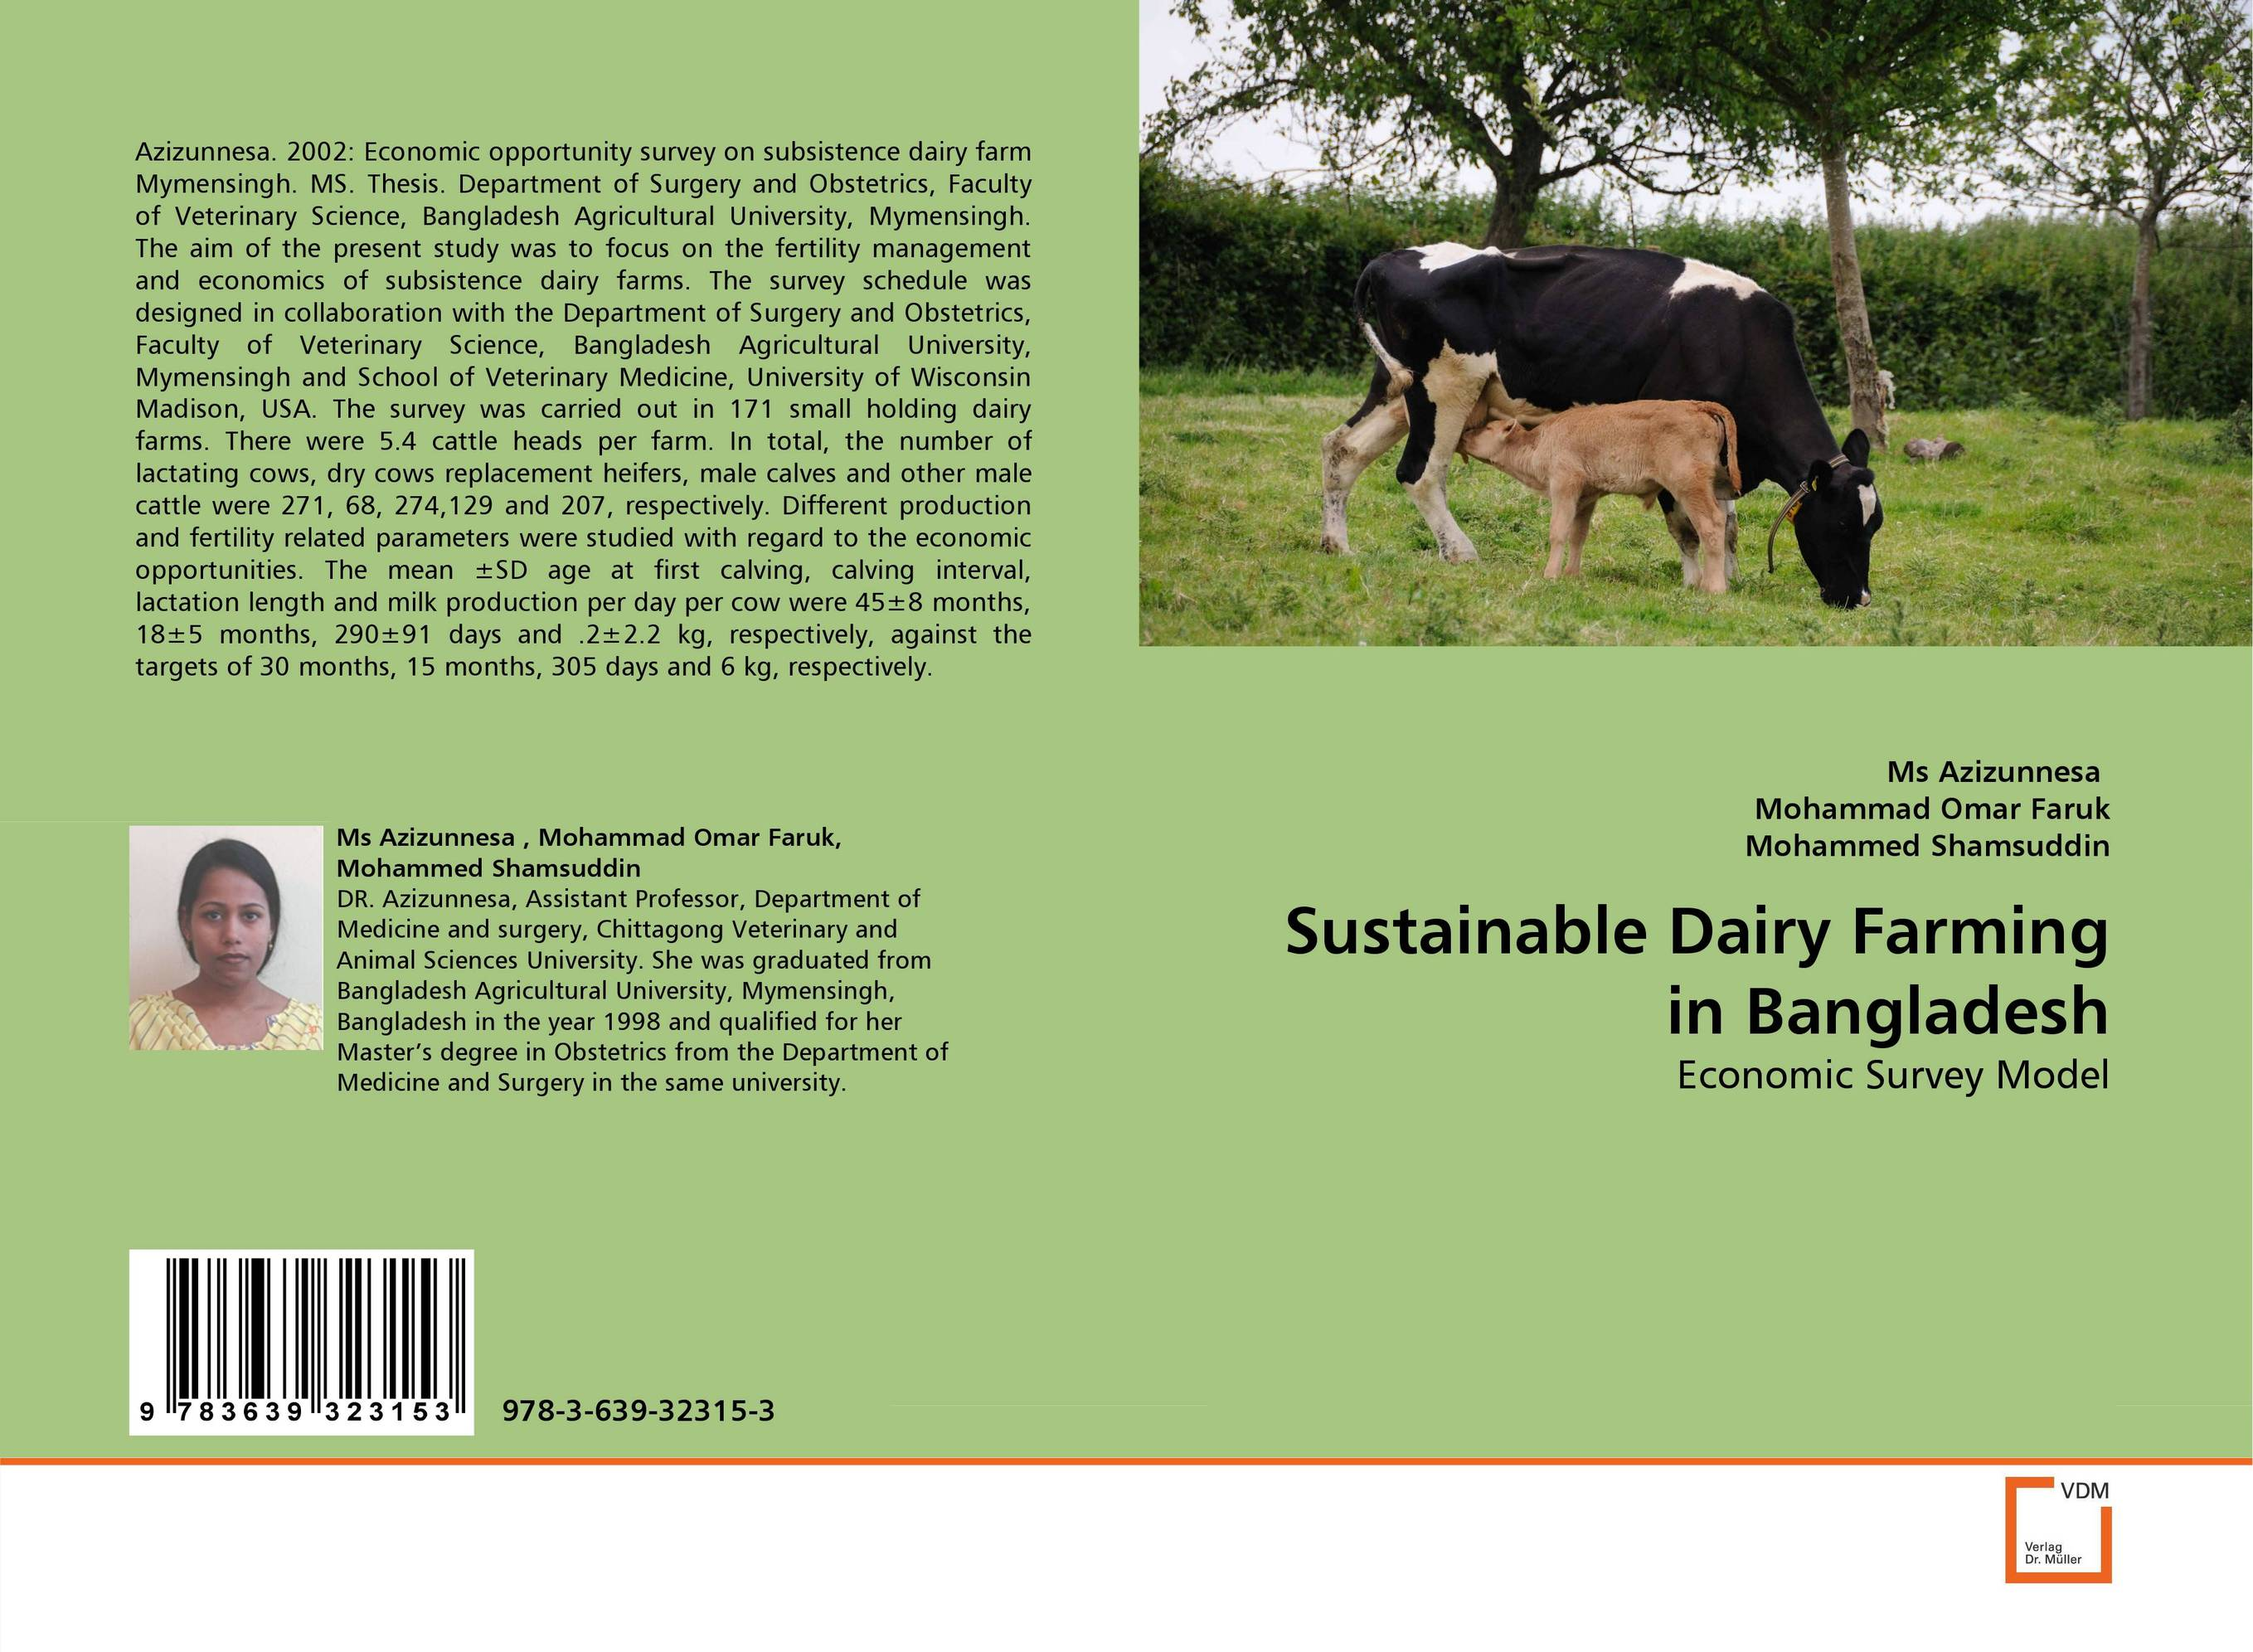 Sustainable Dairy Farming in Bangladesh sustainable dairy farming in bangladesh